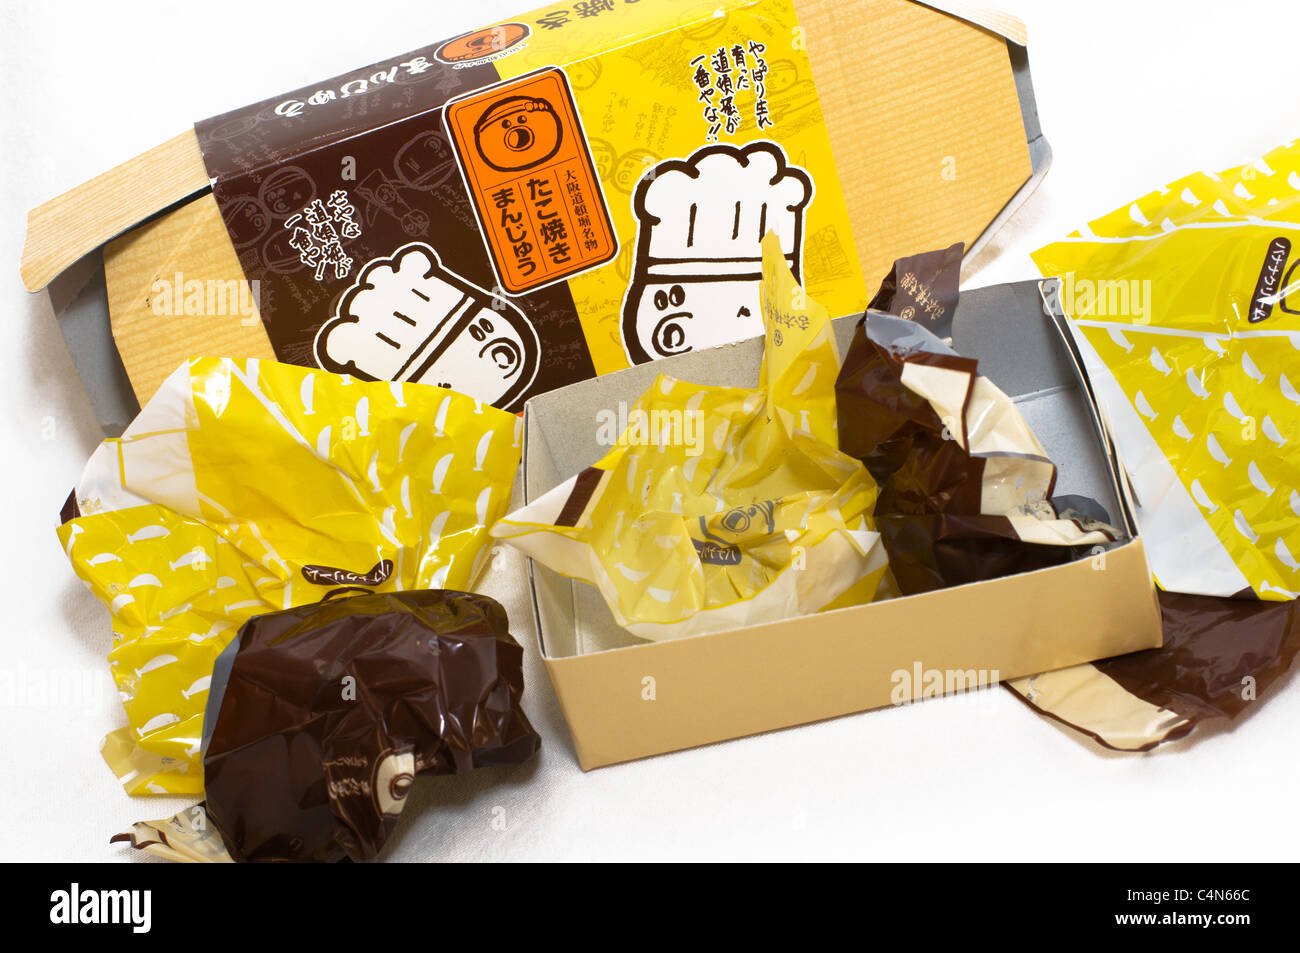 Empty wrappers and an open box are all that is left of this delicious Japanese dessert treat. - Stock Image